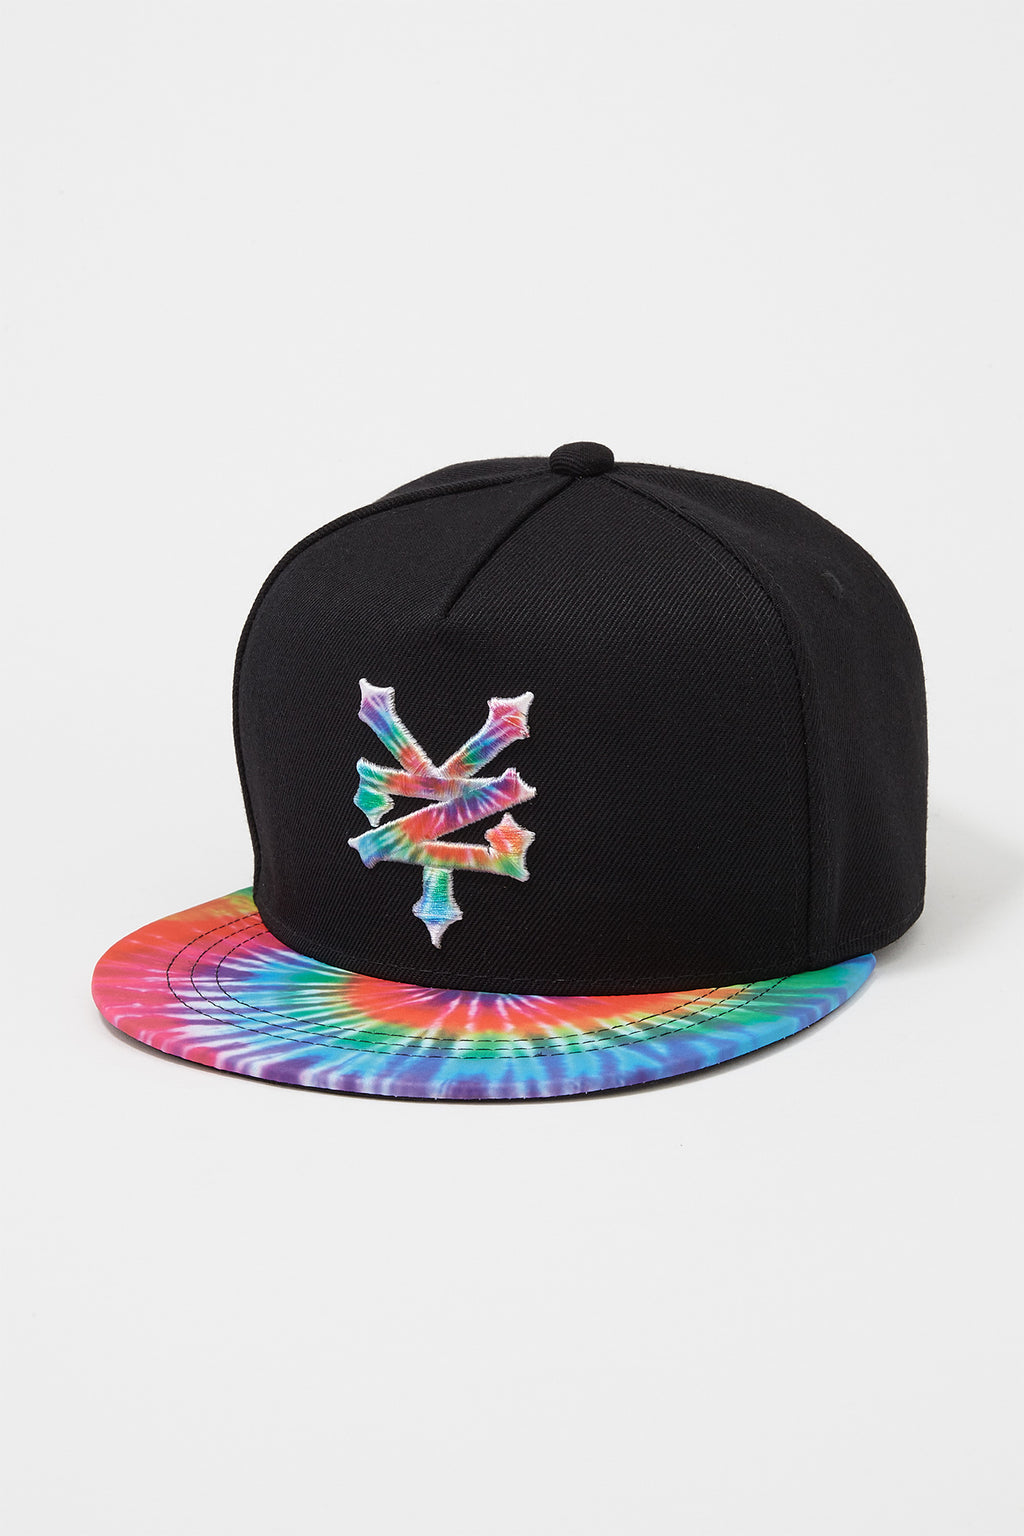 Zoo York Boys Tie Dye Snapback Hat